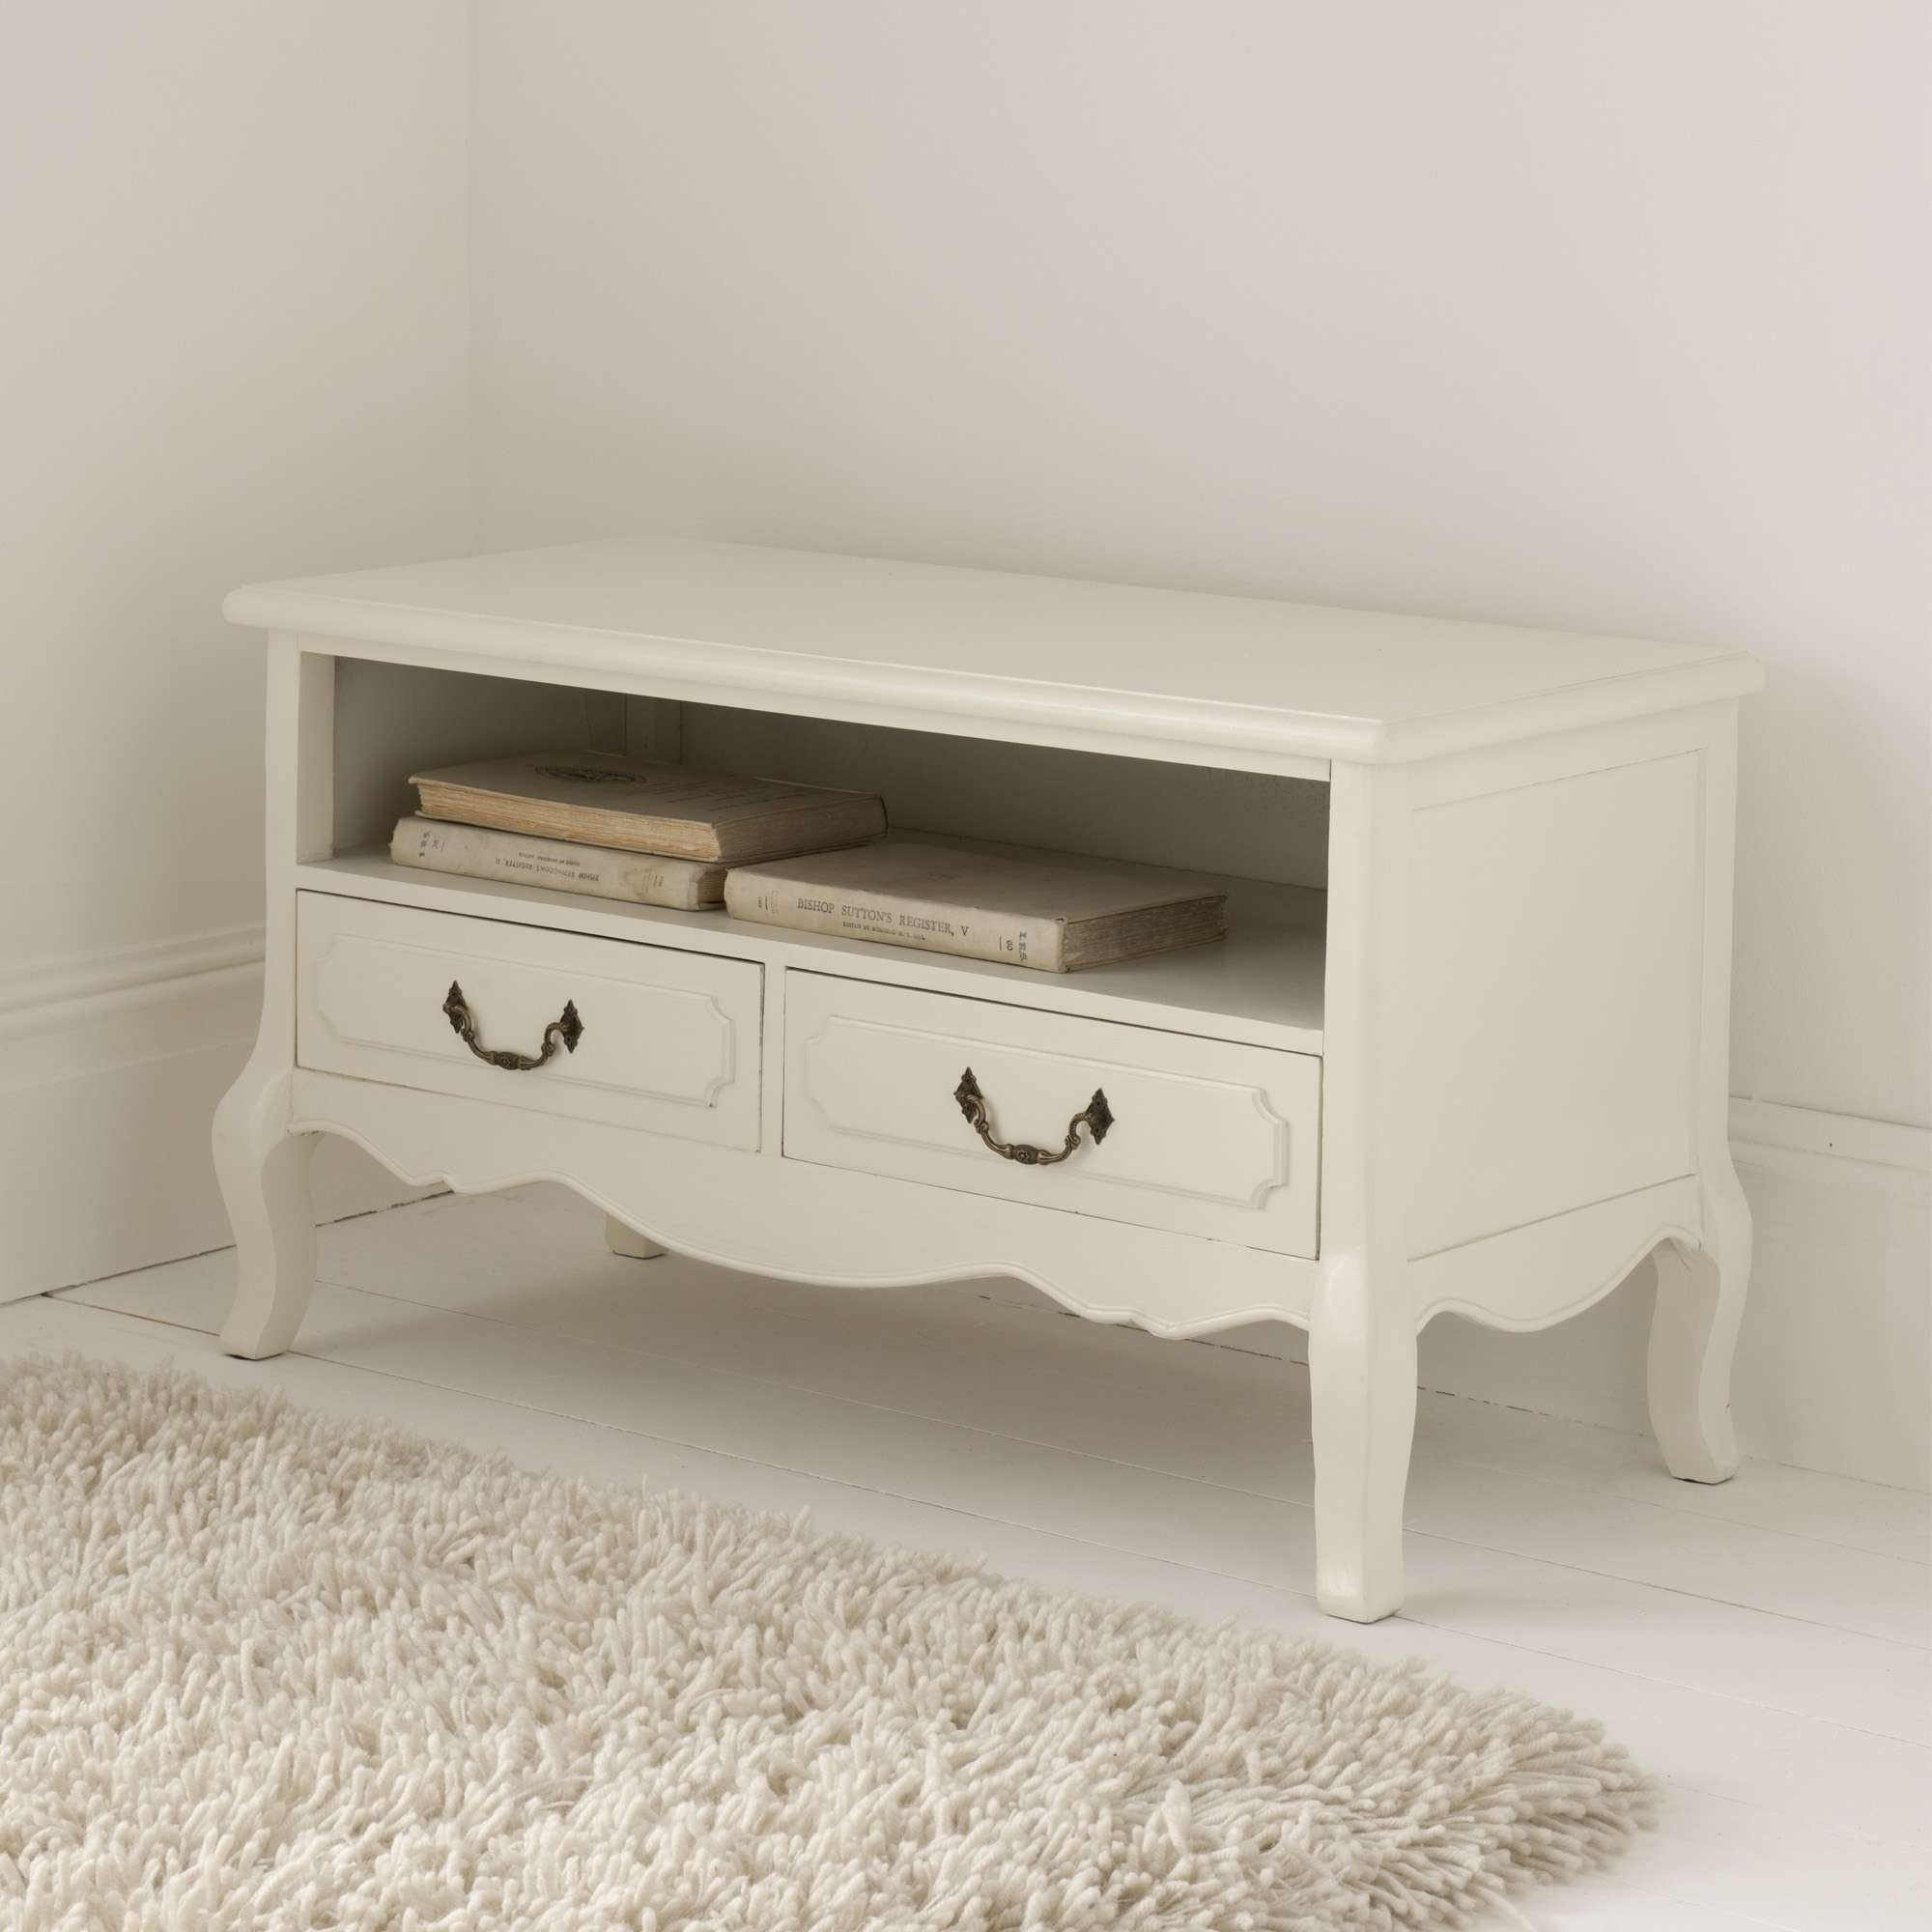 Shabby Chic Furniture For Your Home І Homesdirect365 For Shabby Chic Tv Cabinets (View 14 of 20)